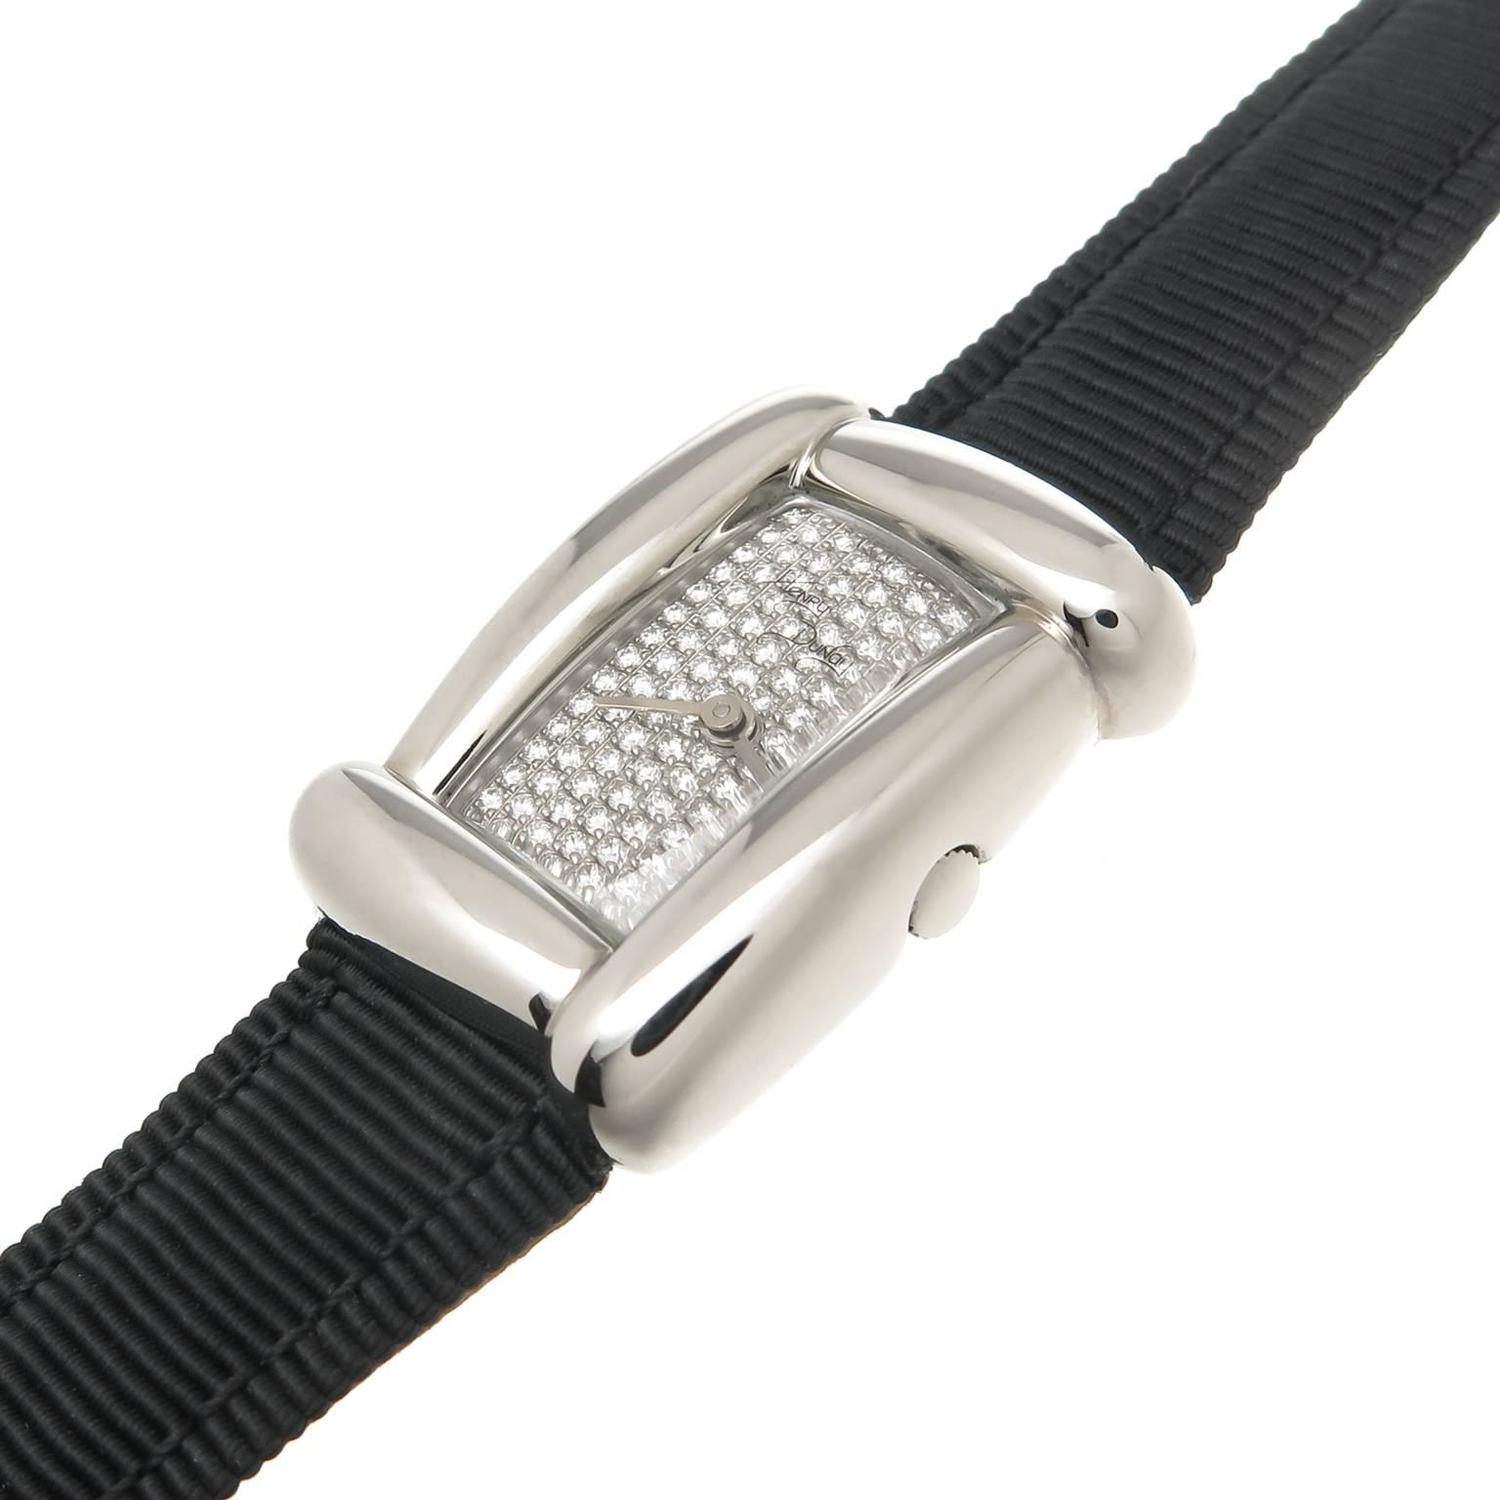 Henry Dunay Ladyu0026#39;s Stainless Steel Diamond Medea Quartz Wristwatch For Sale at 1stdibs